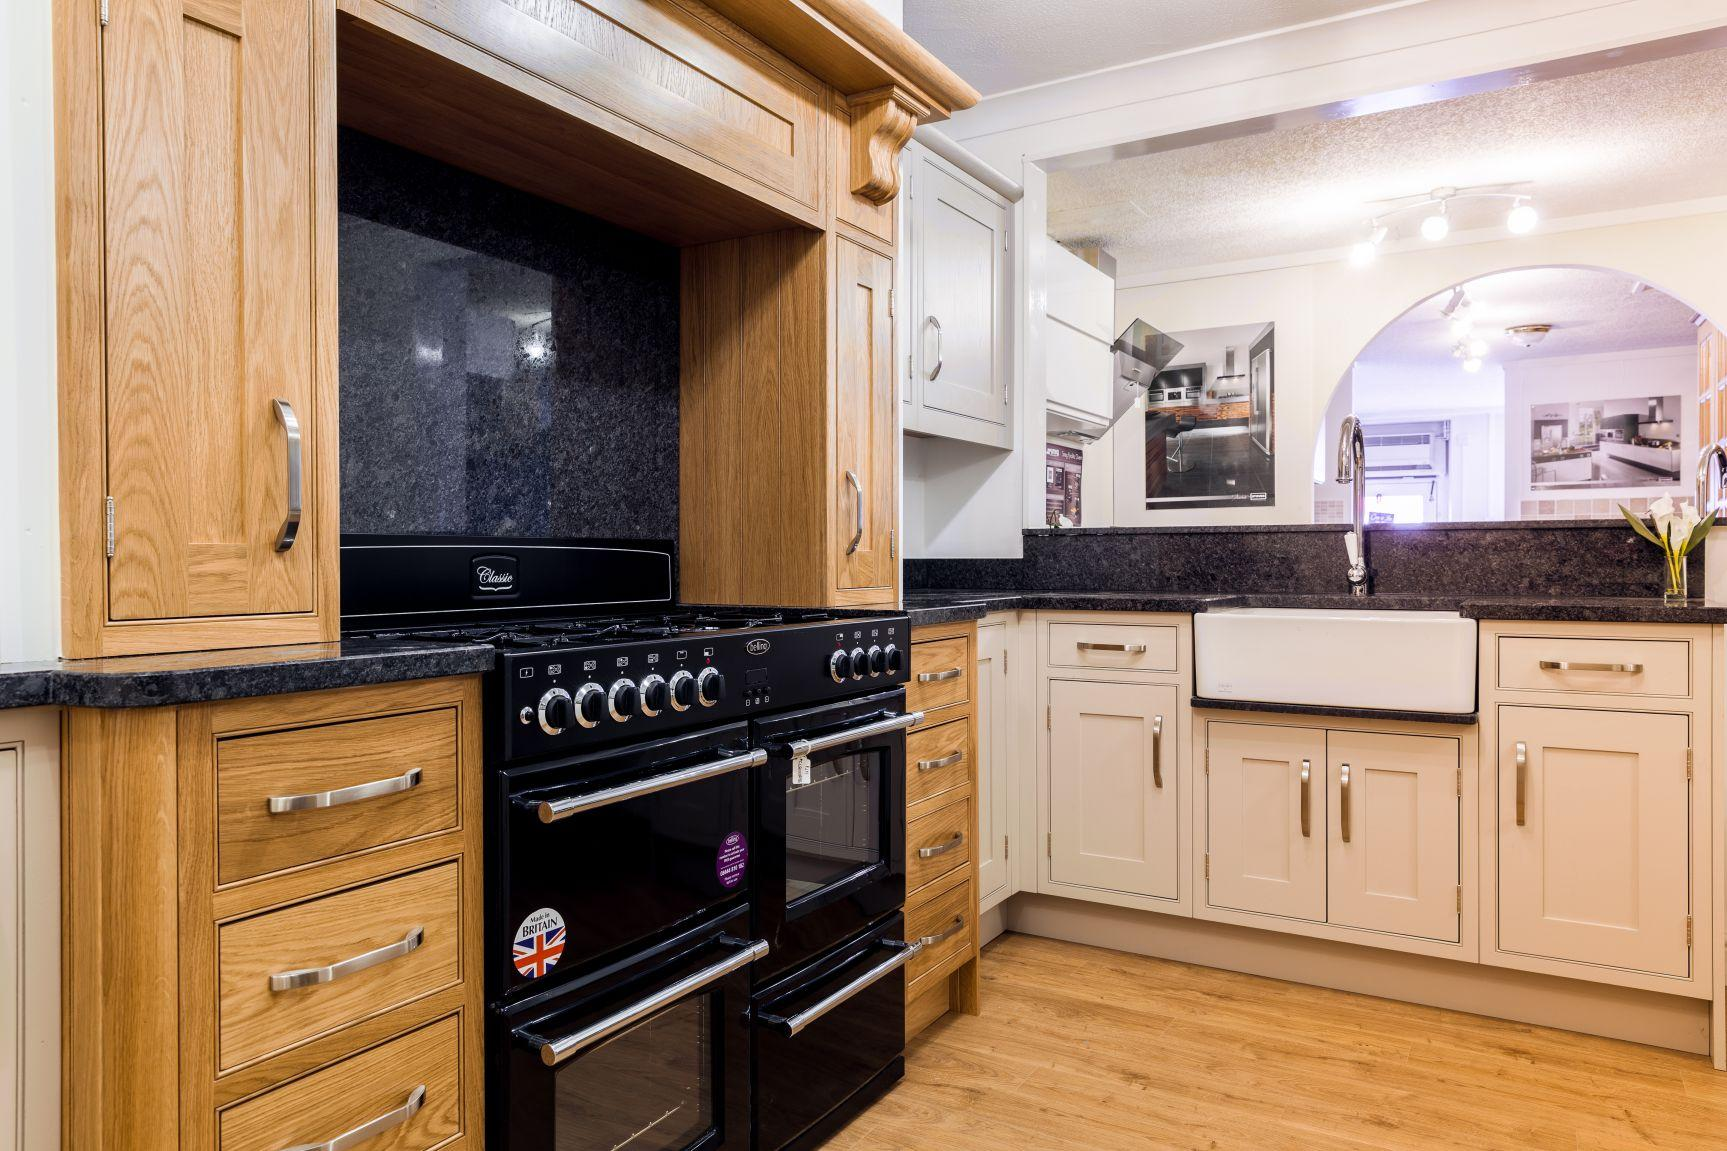 Bettinsons kitchens leicester consider kitchen triangles for Perfect kitchen triangle